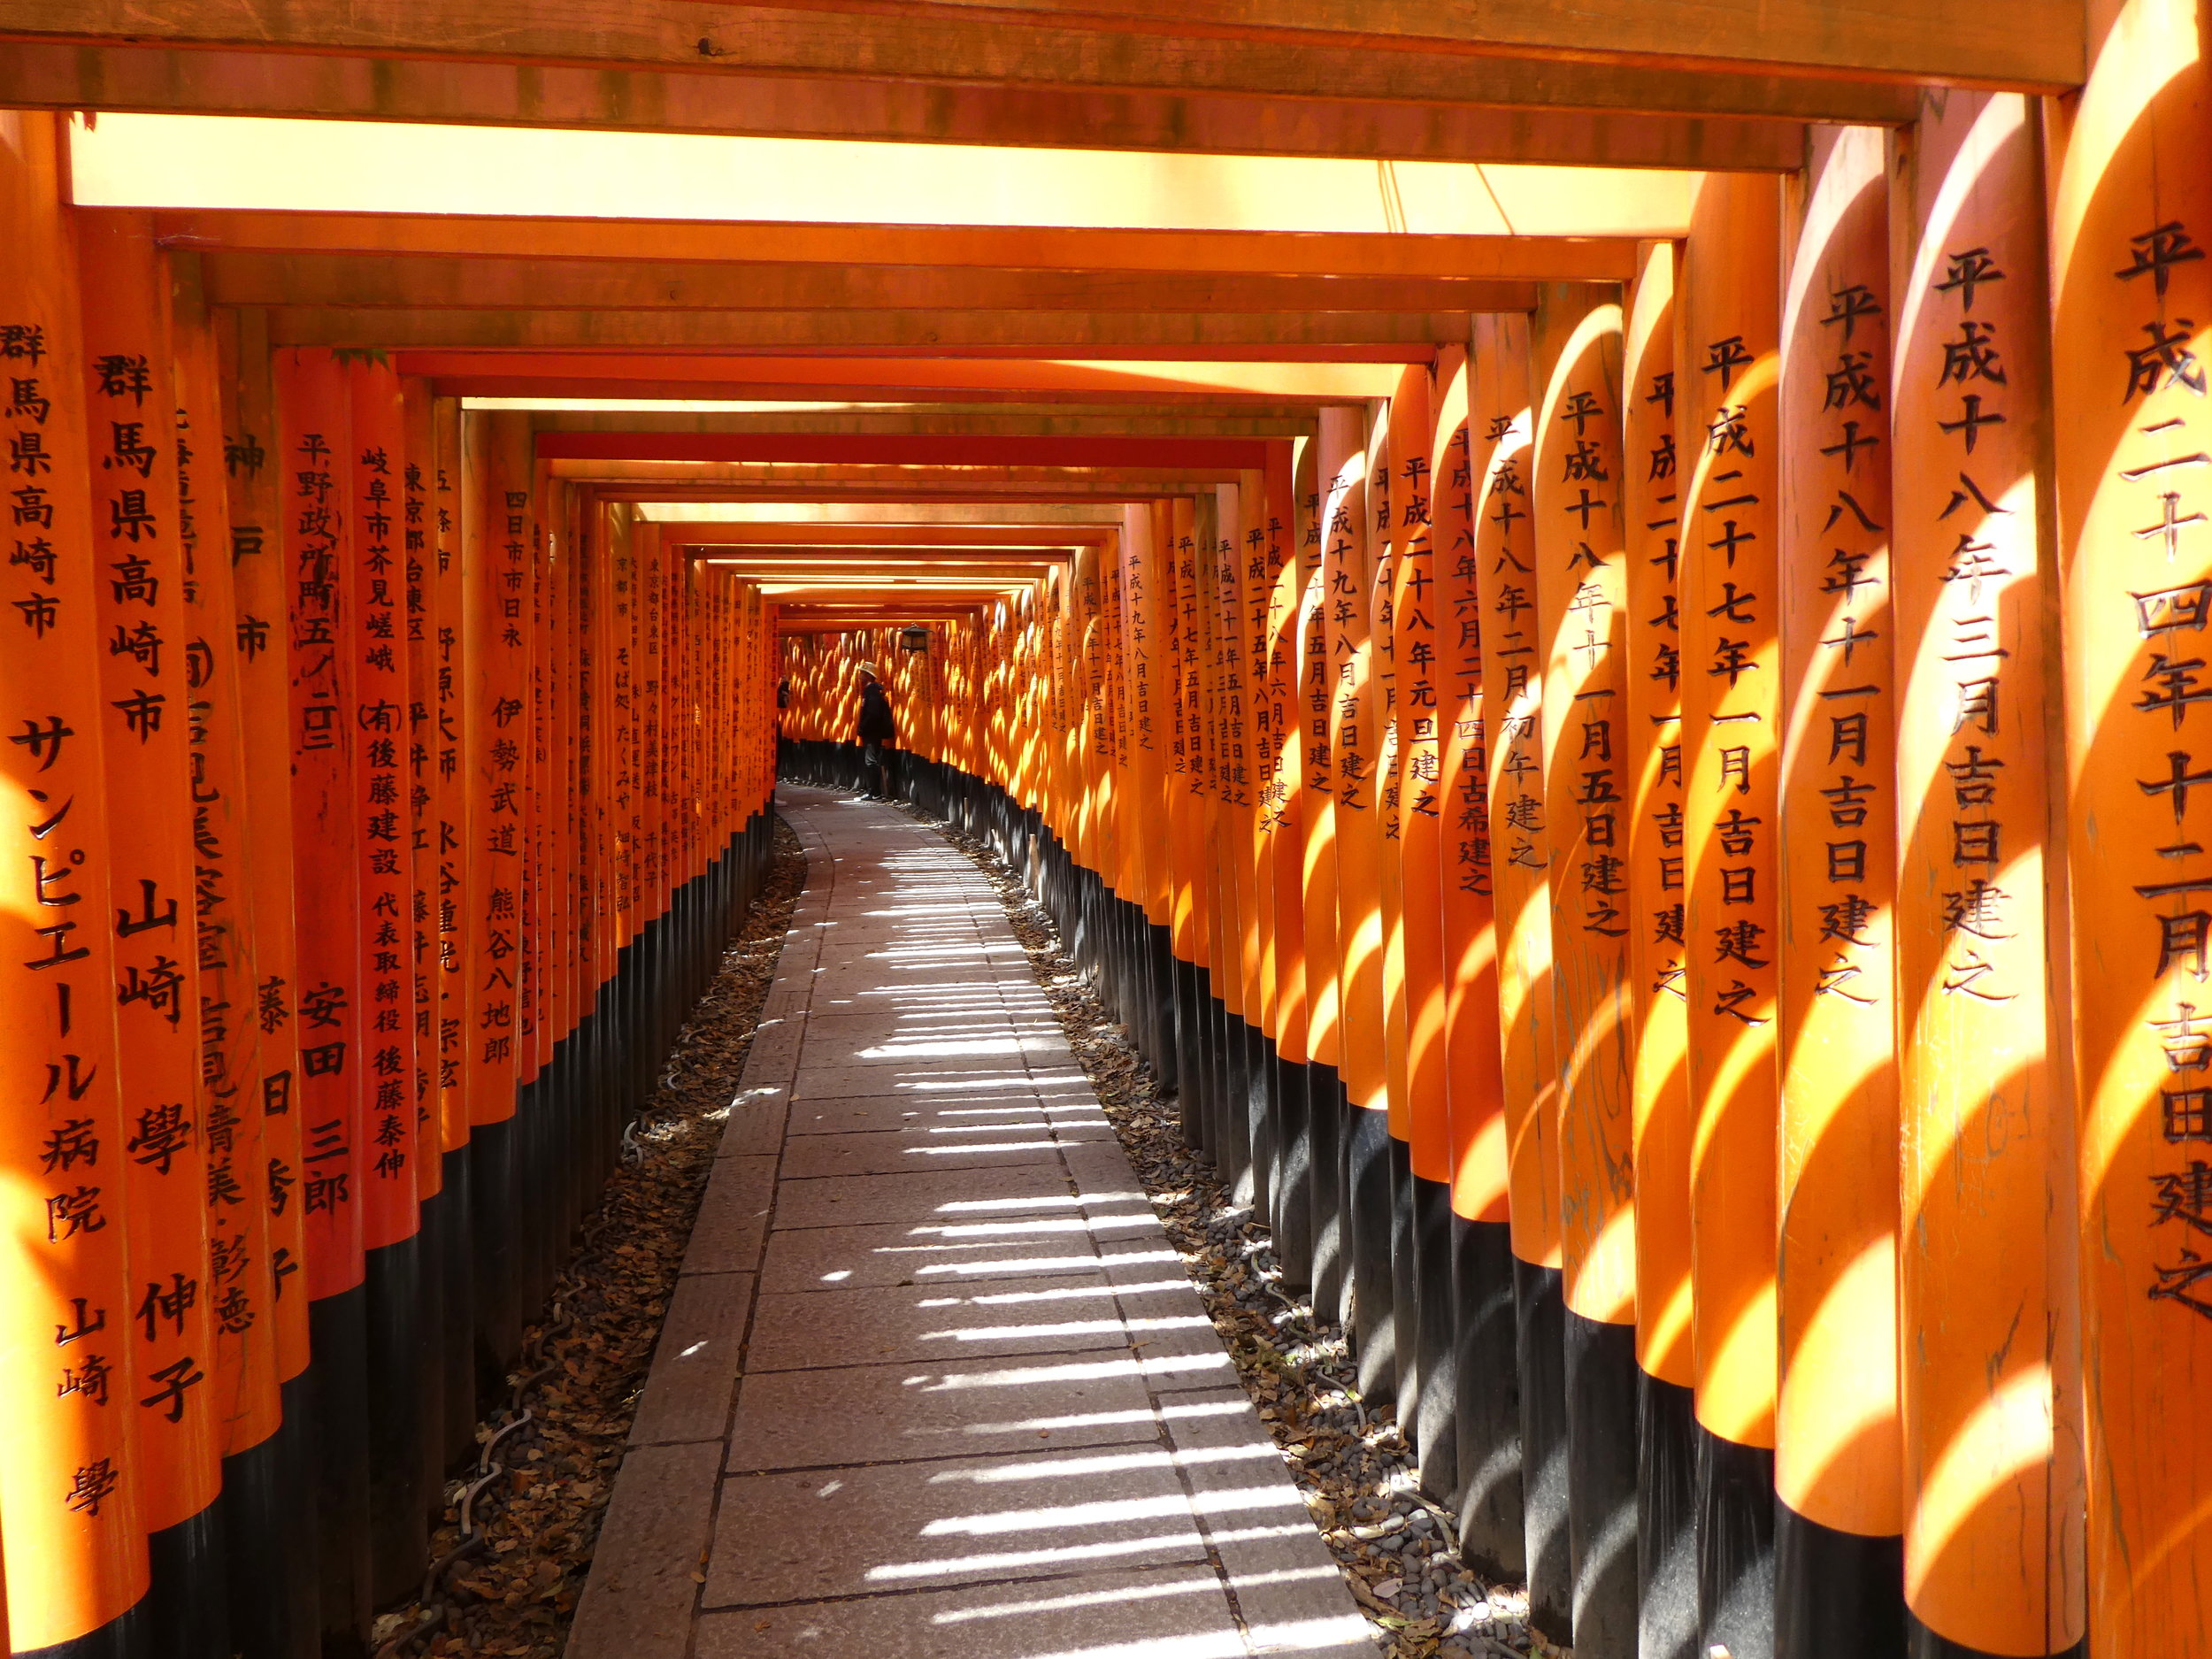 Inari gates. Going through these gates, which number in the thousands, takes you up a steep hillside to a mountaintop shrine overlooking Kyoto.